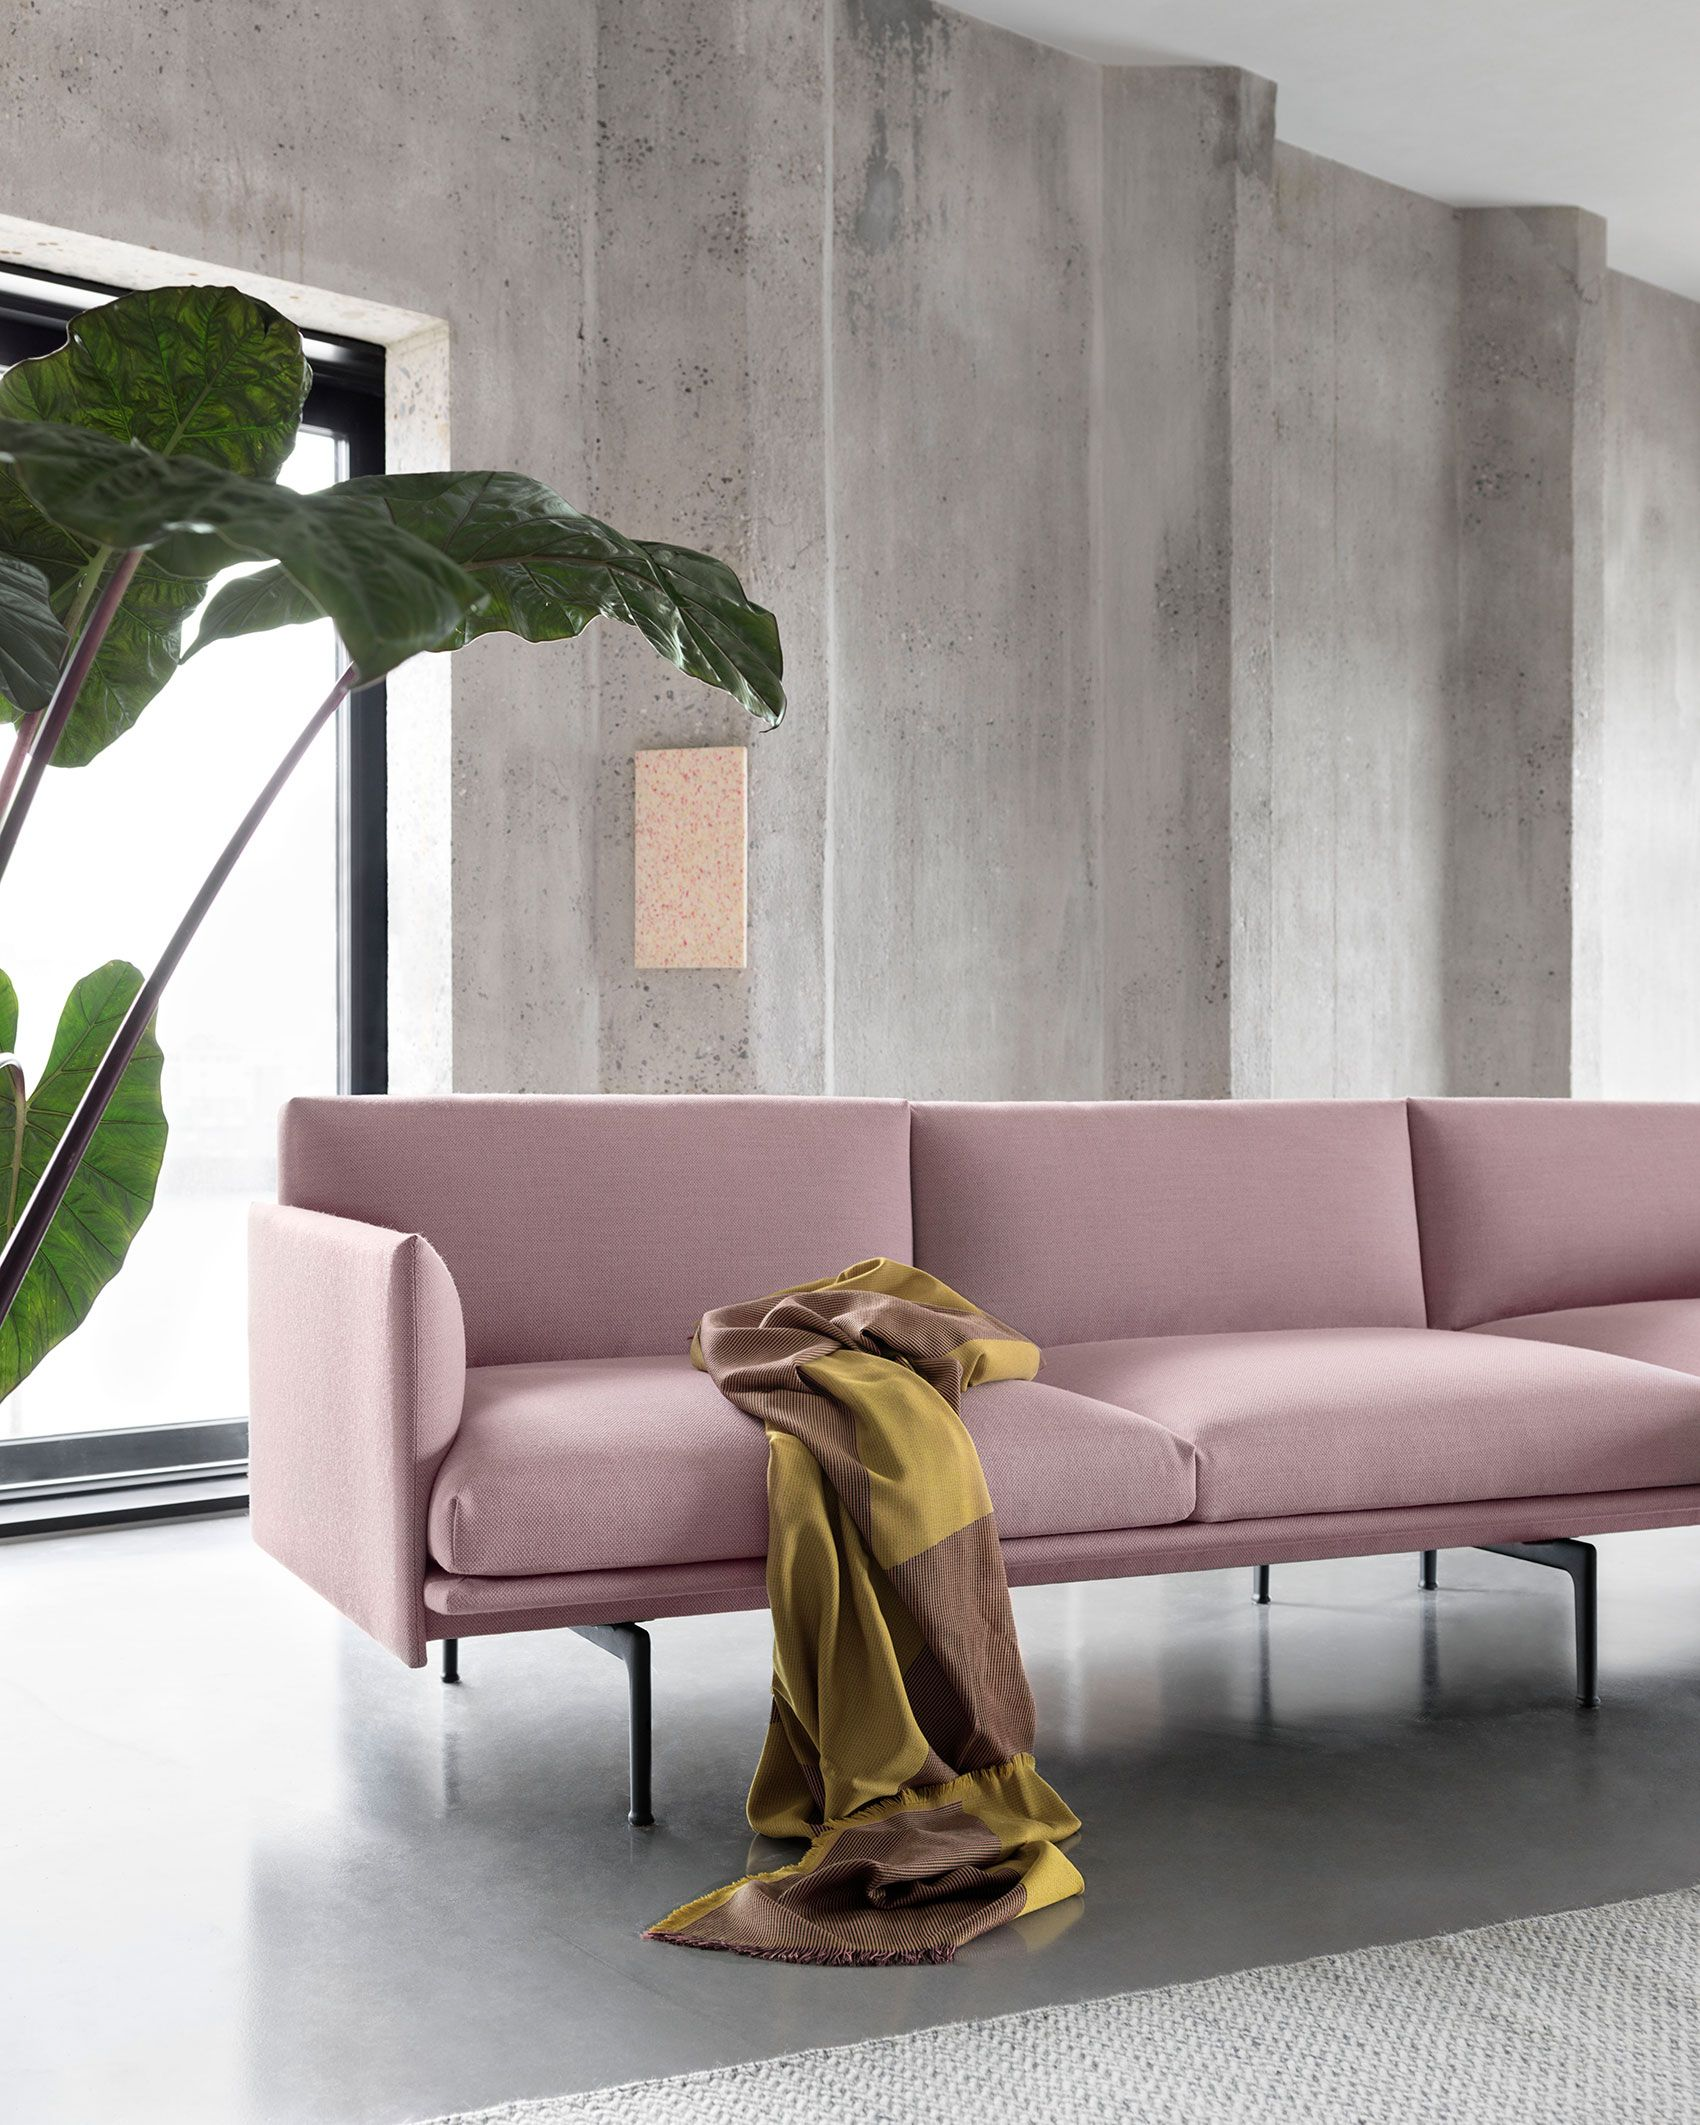 The Outline Sofa From Muuto Adds New Perspectives To The Classic Scandinavian Design Sofas Of The 1960 S Pastel Interior Sofa Design Minimalist Home Interior